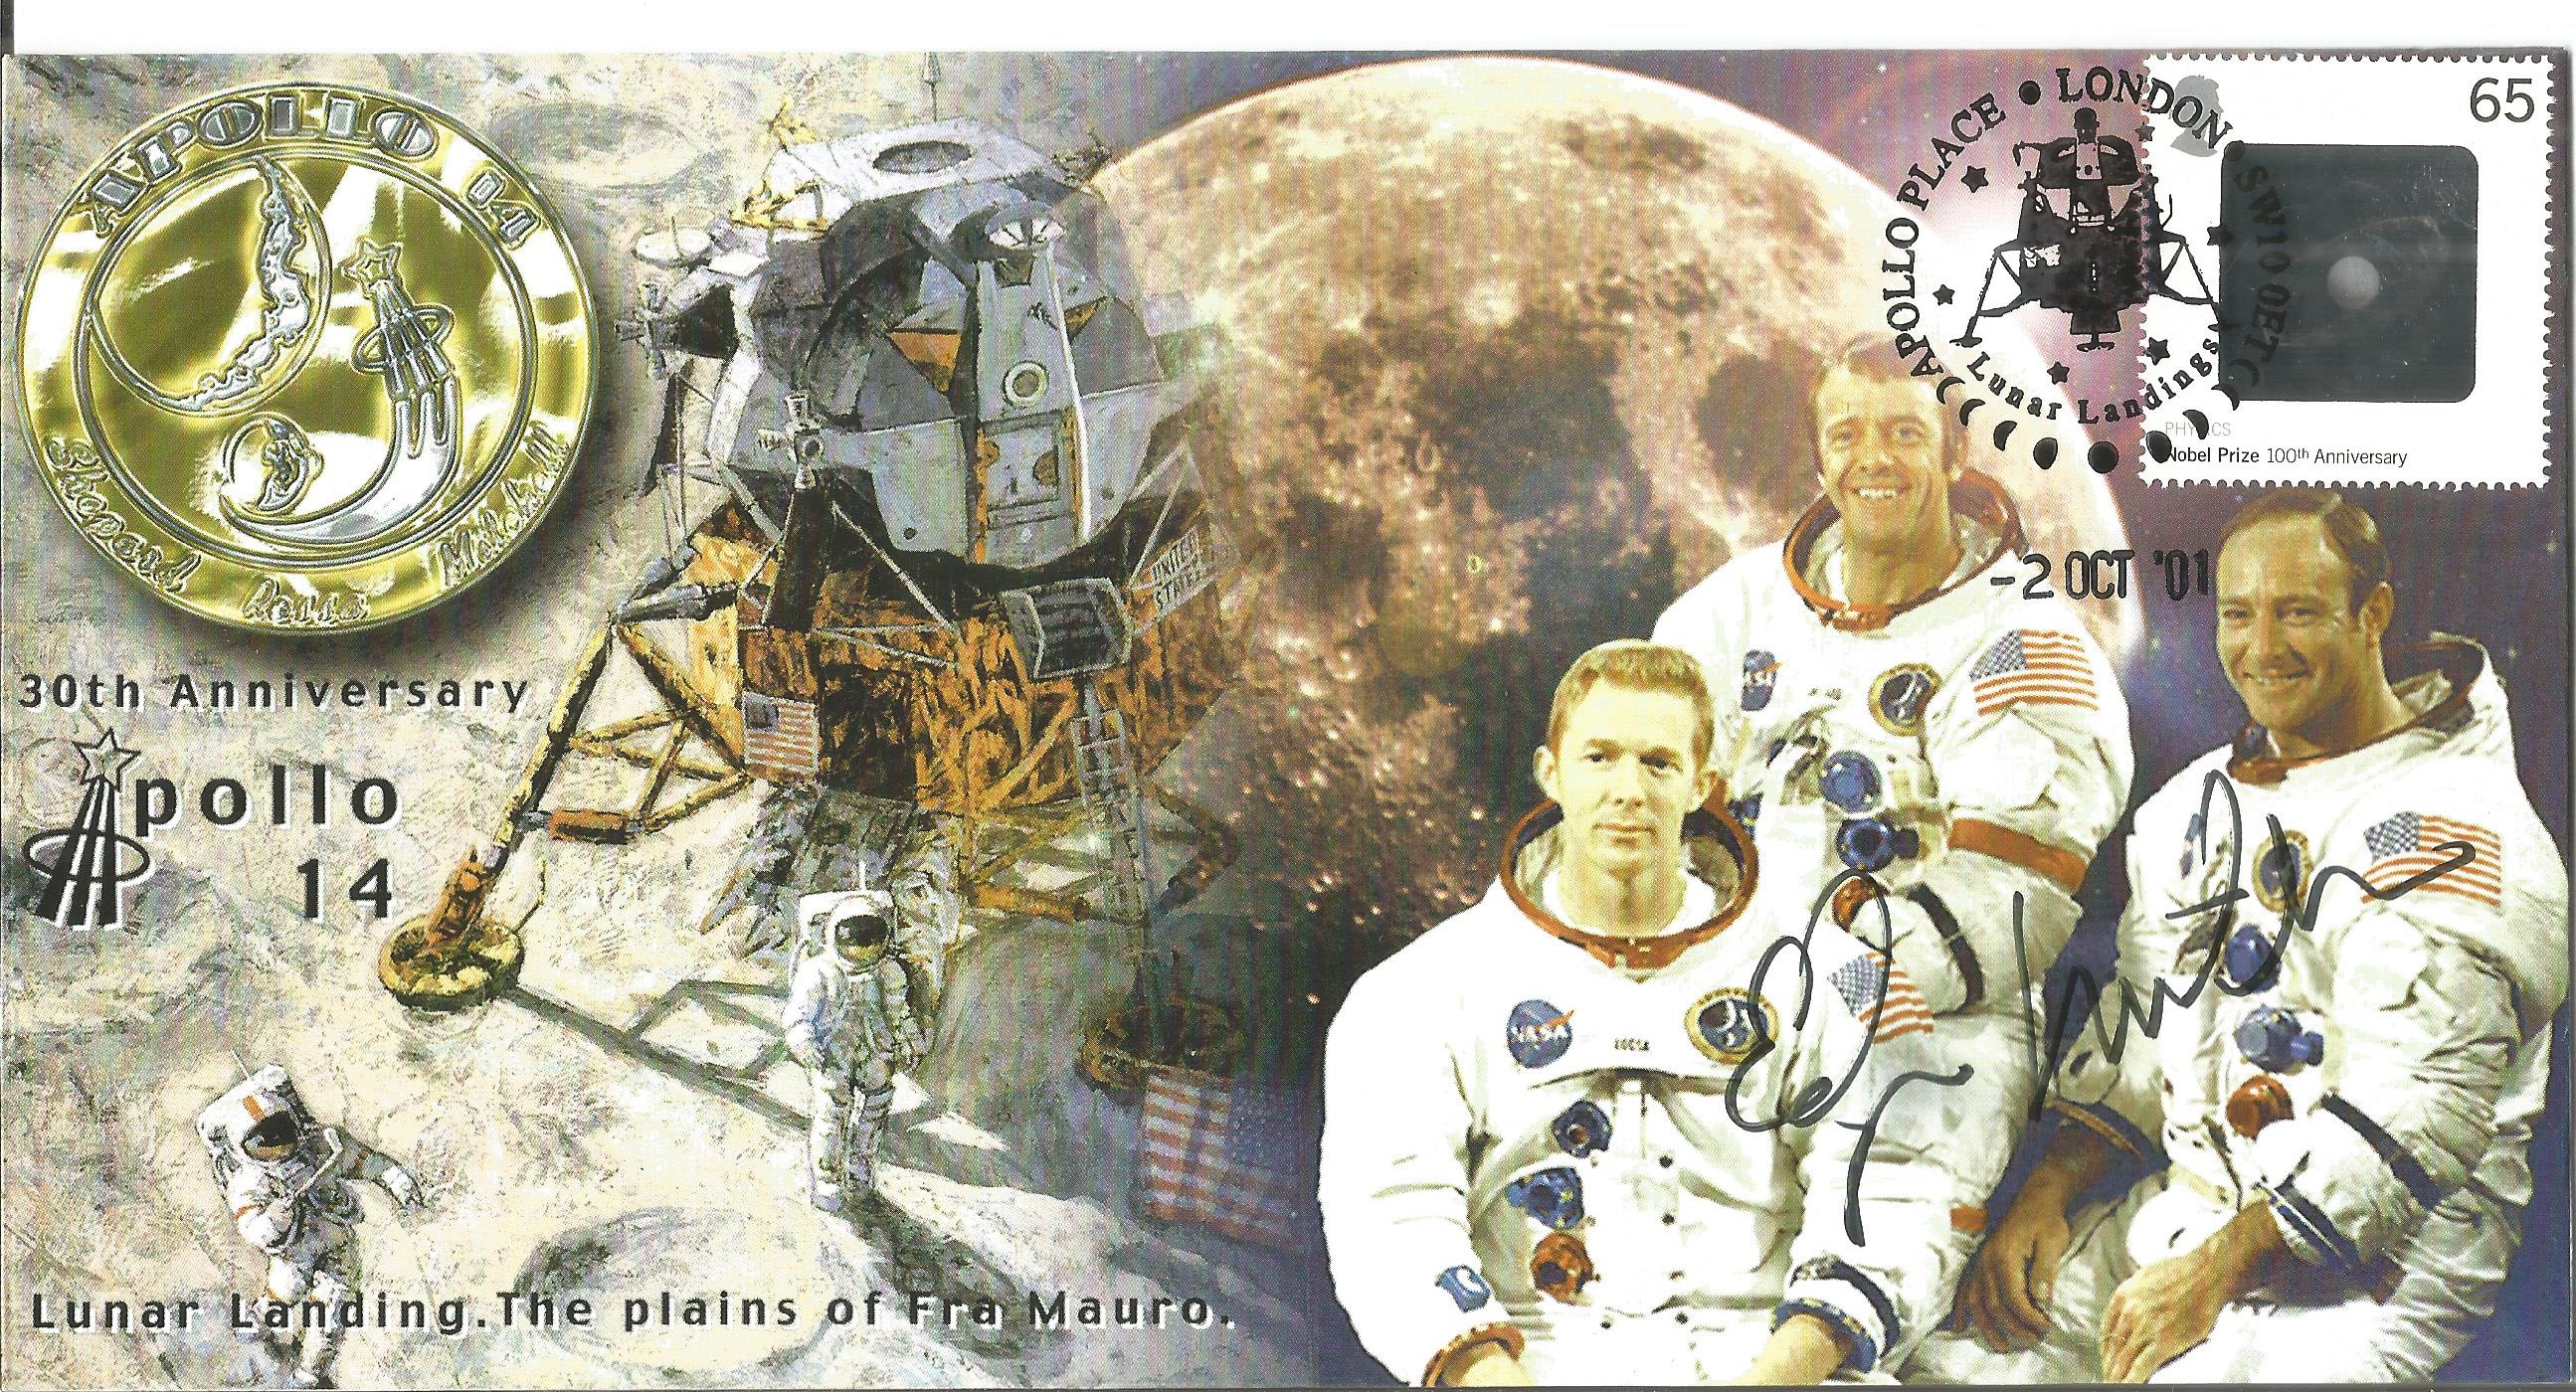 Space Moonwalker Dr Edgar Mitchell NASA Astronaut signed 2001 Apollo 14 Limited Edition cover